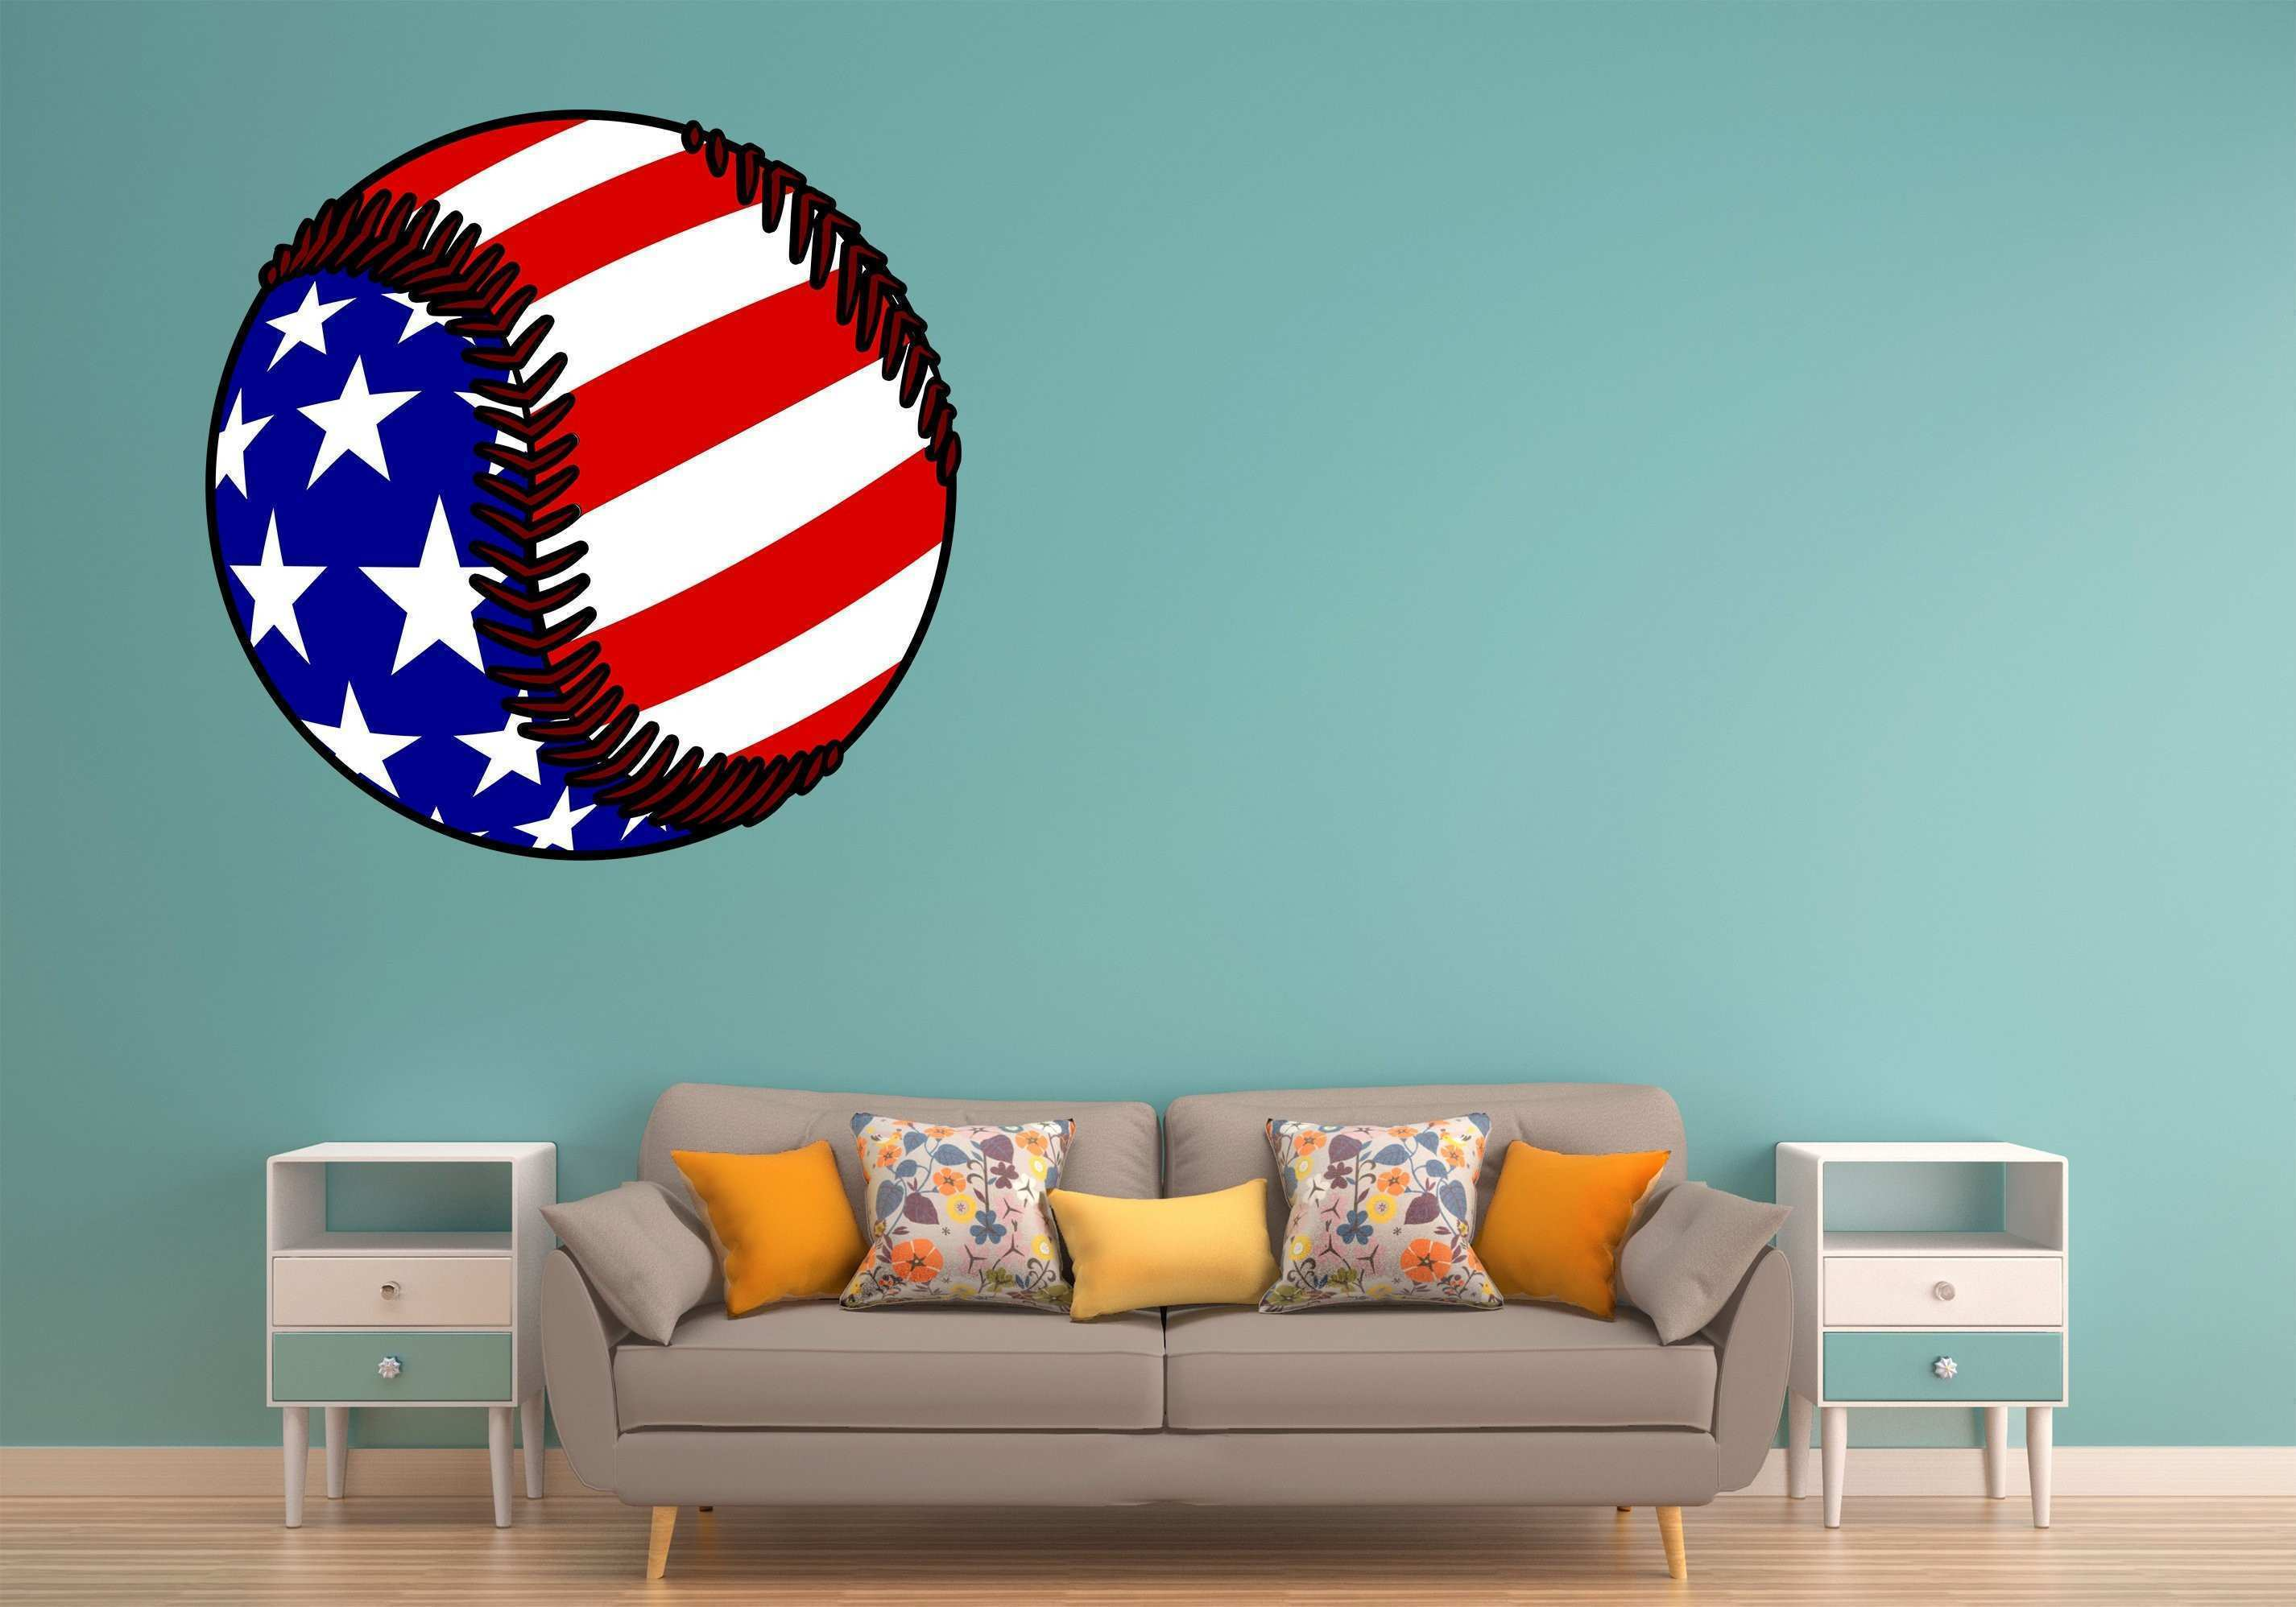 Red White Blue Baseball Wall Art Decal Sticker – Let s Print Big